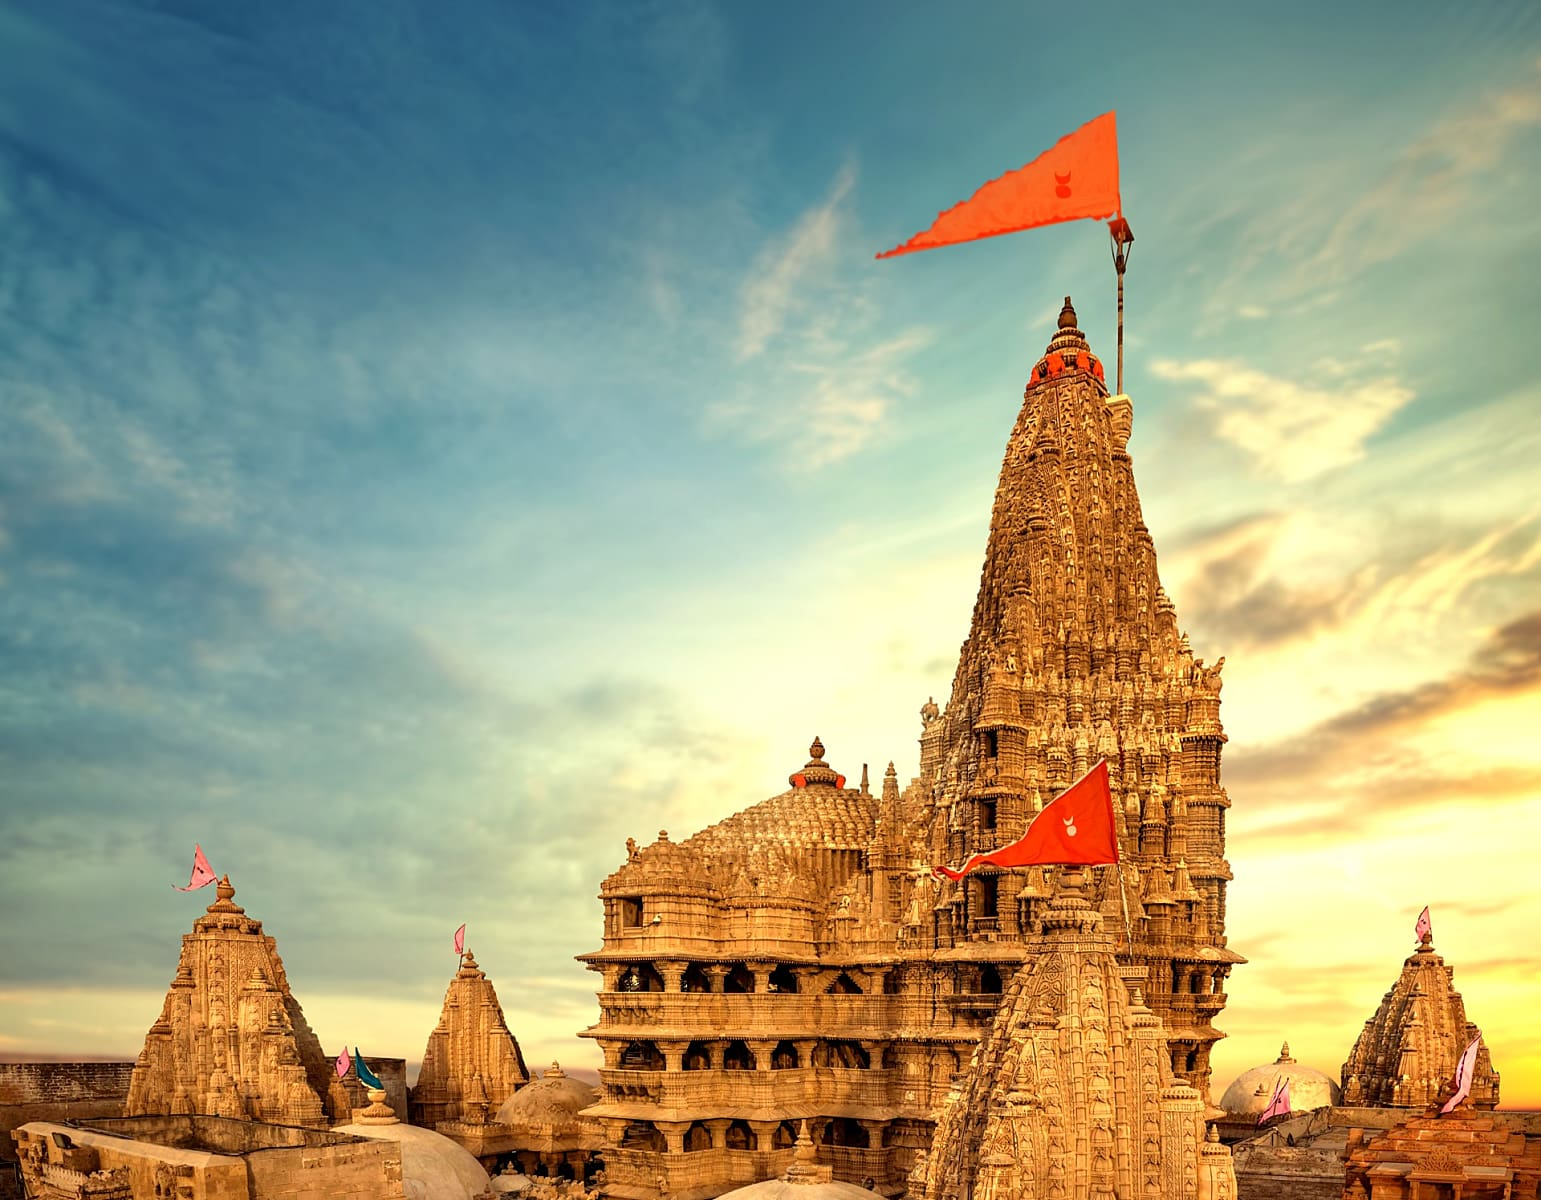 Temples in India where I have been to